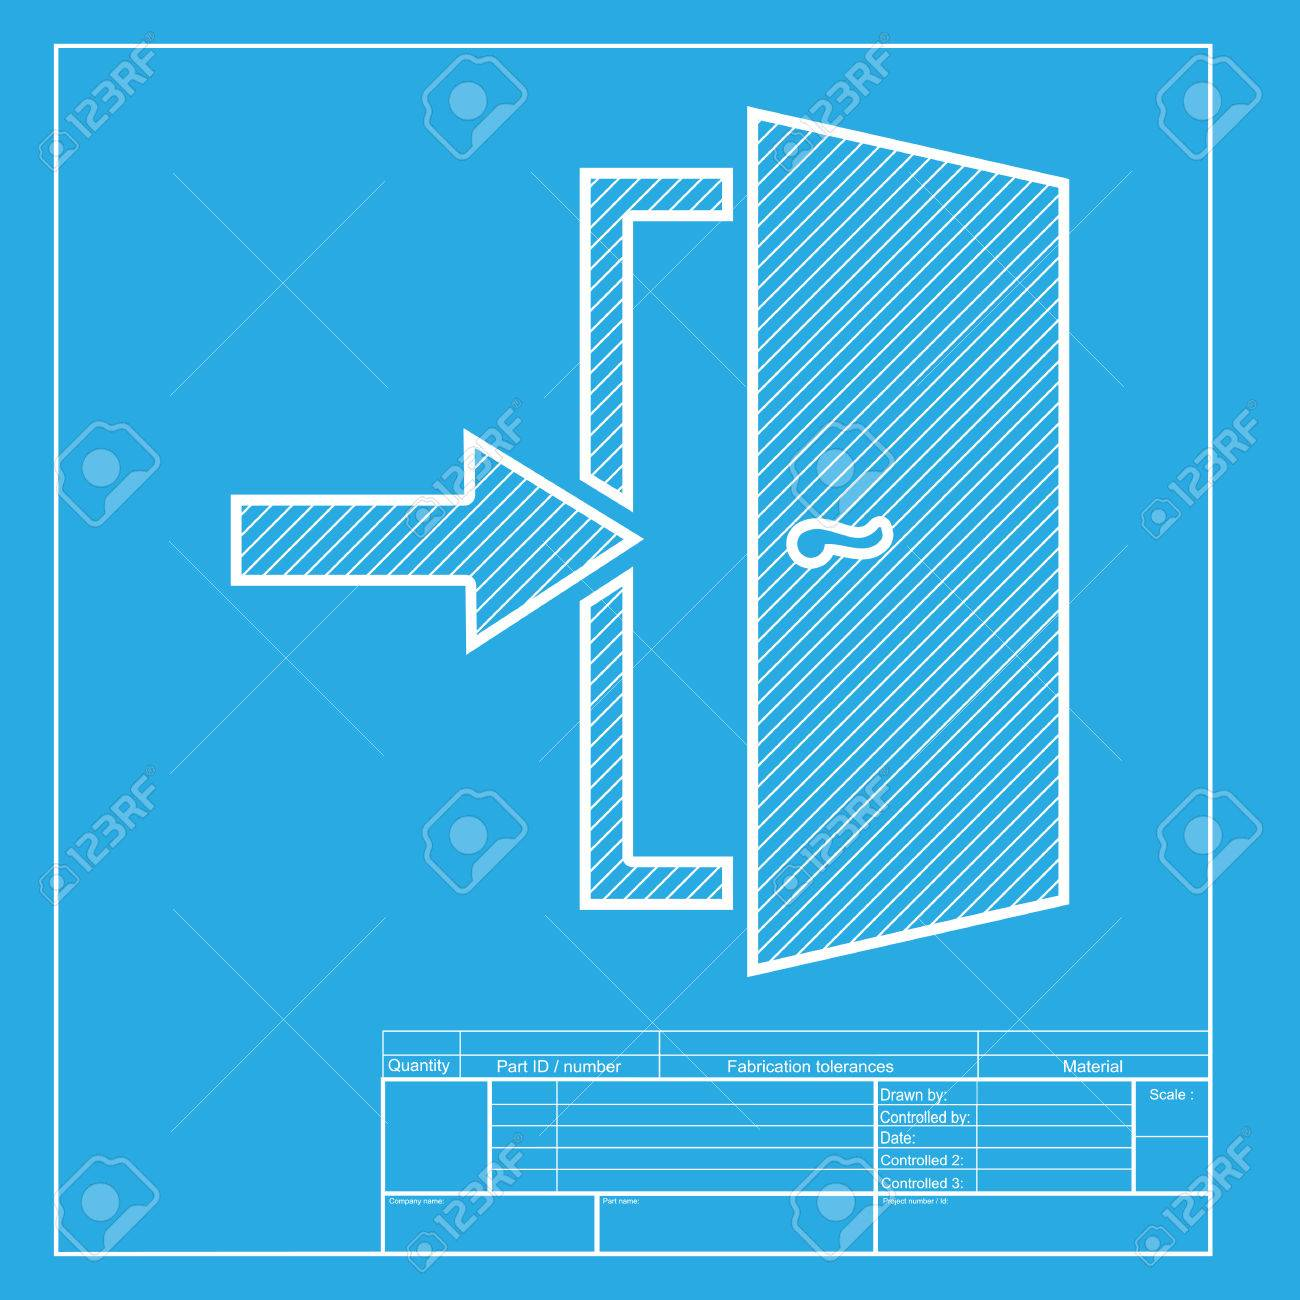 blueprint door icon u0026 door blueprint symbol